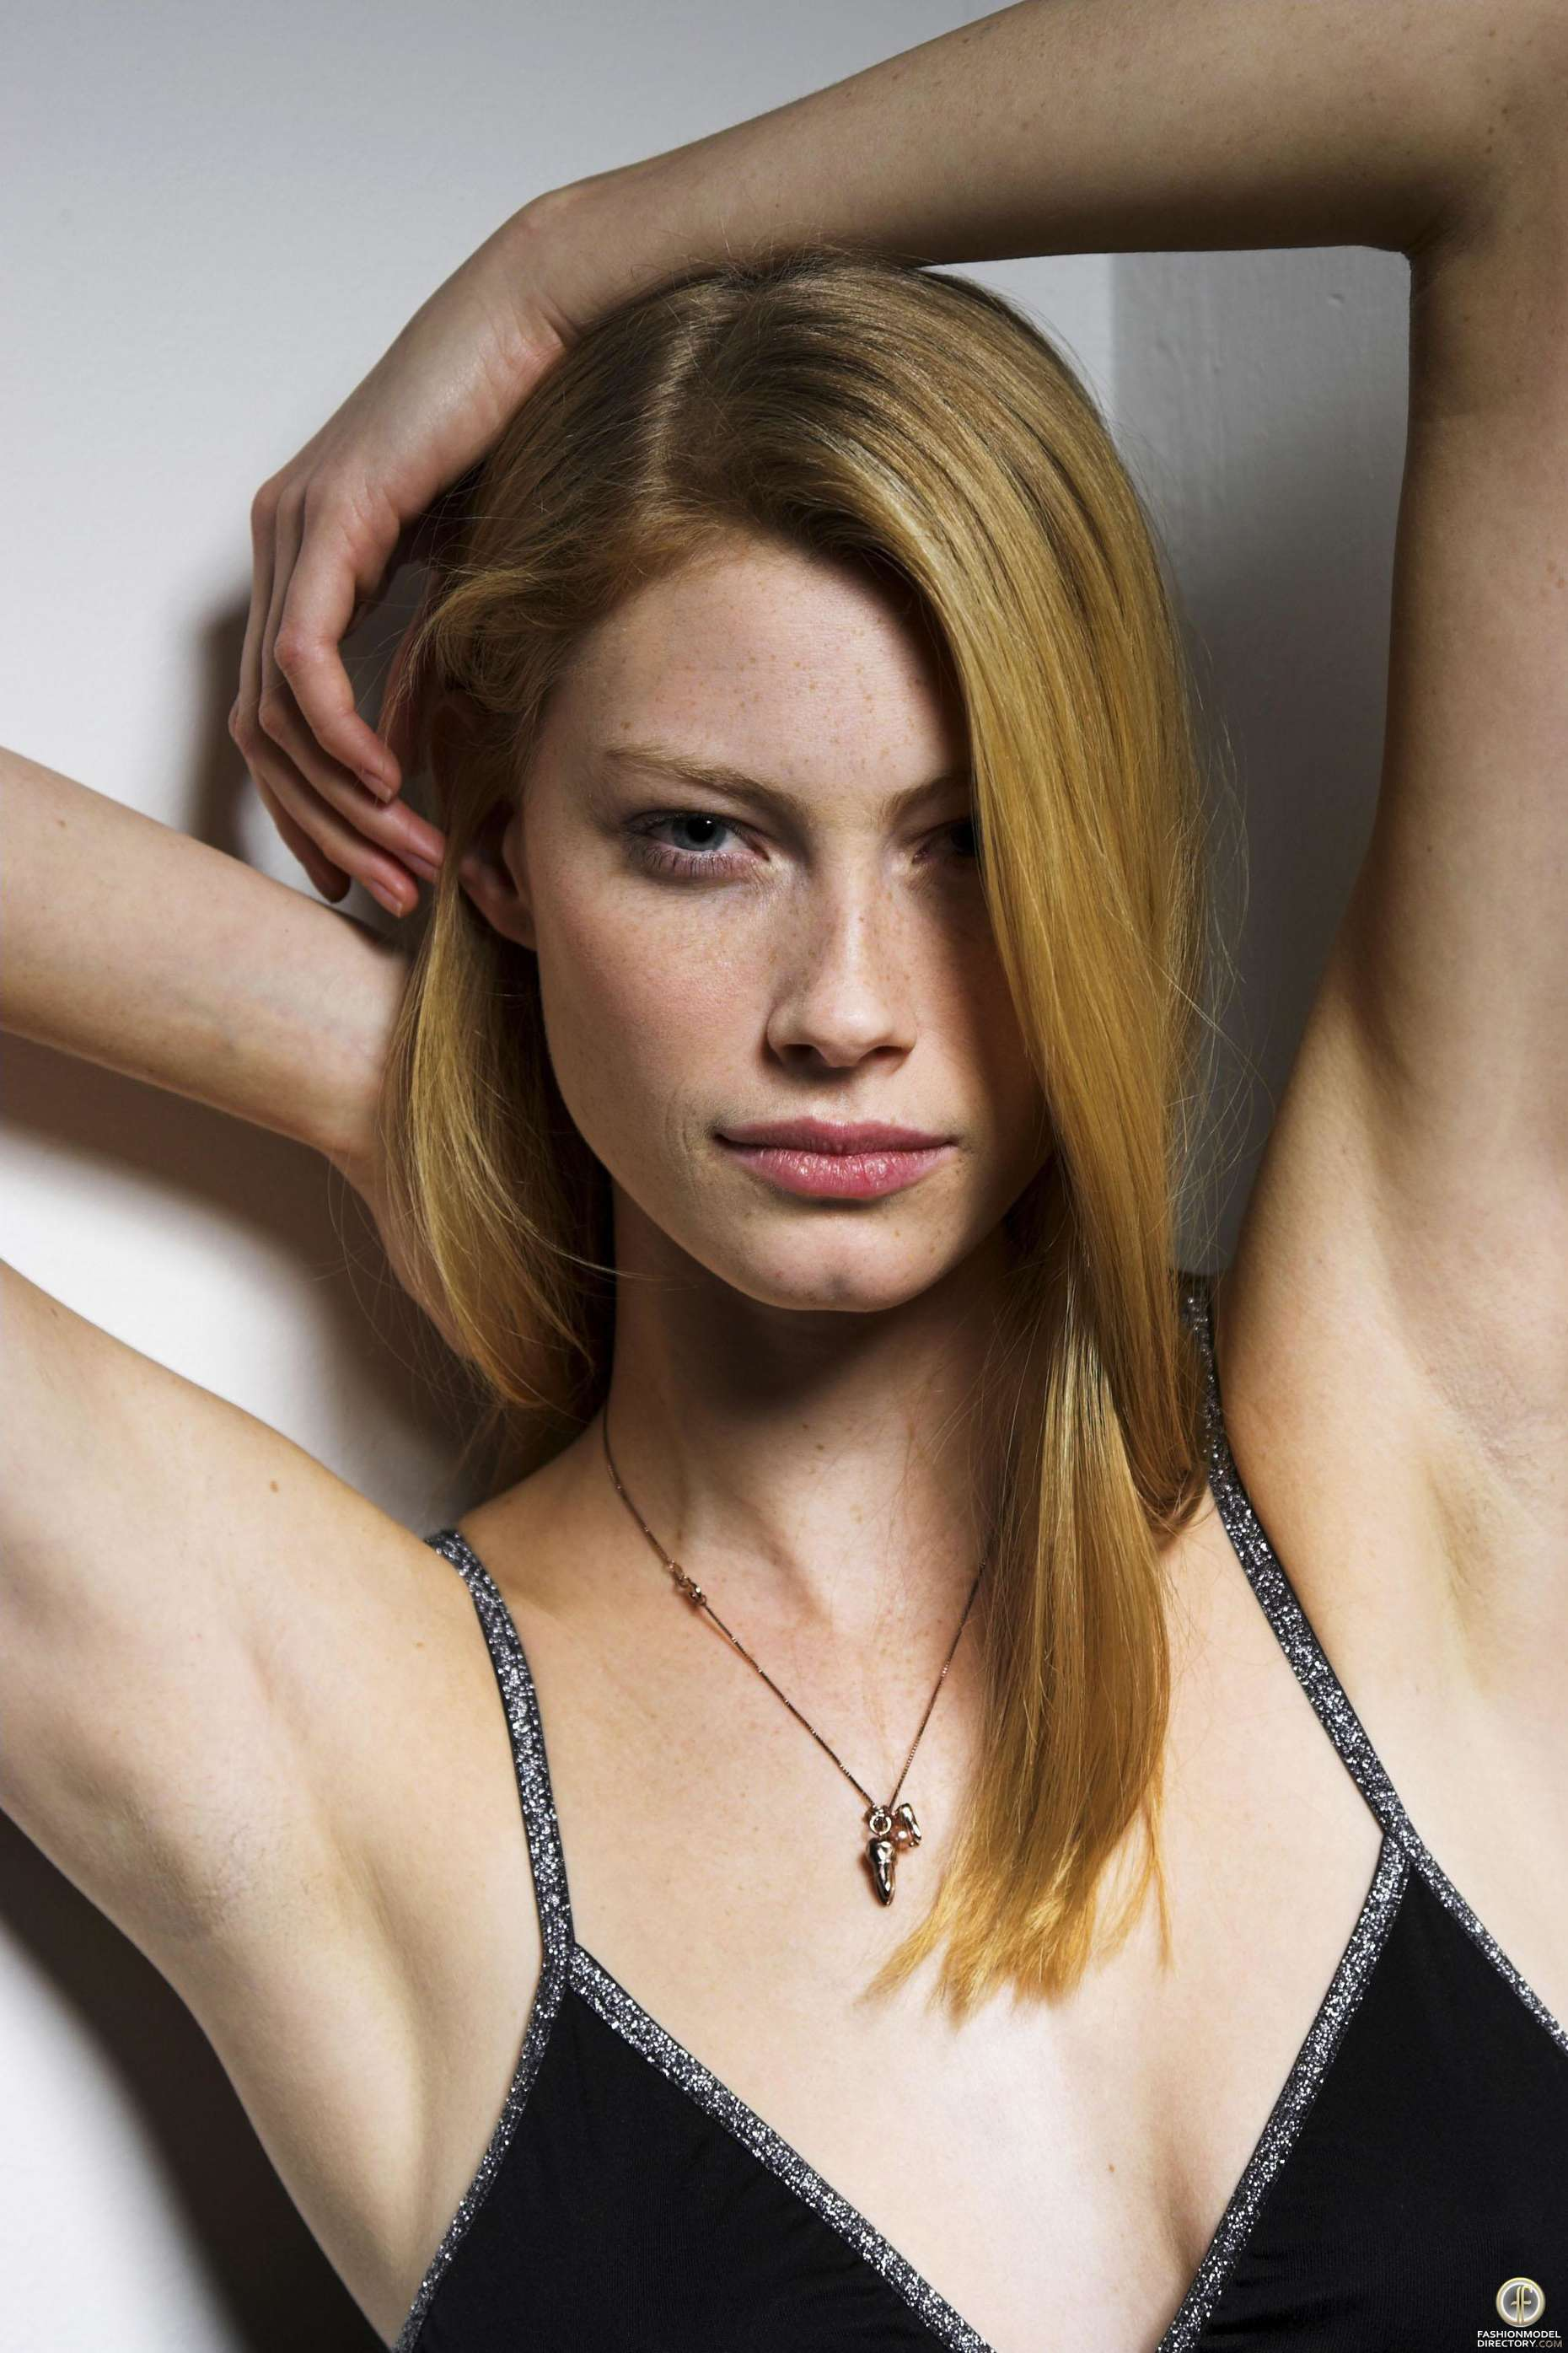 Australian Cup Measurement Alyssa Sutherland Bra Size And Body Measurements